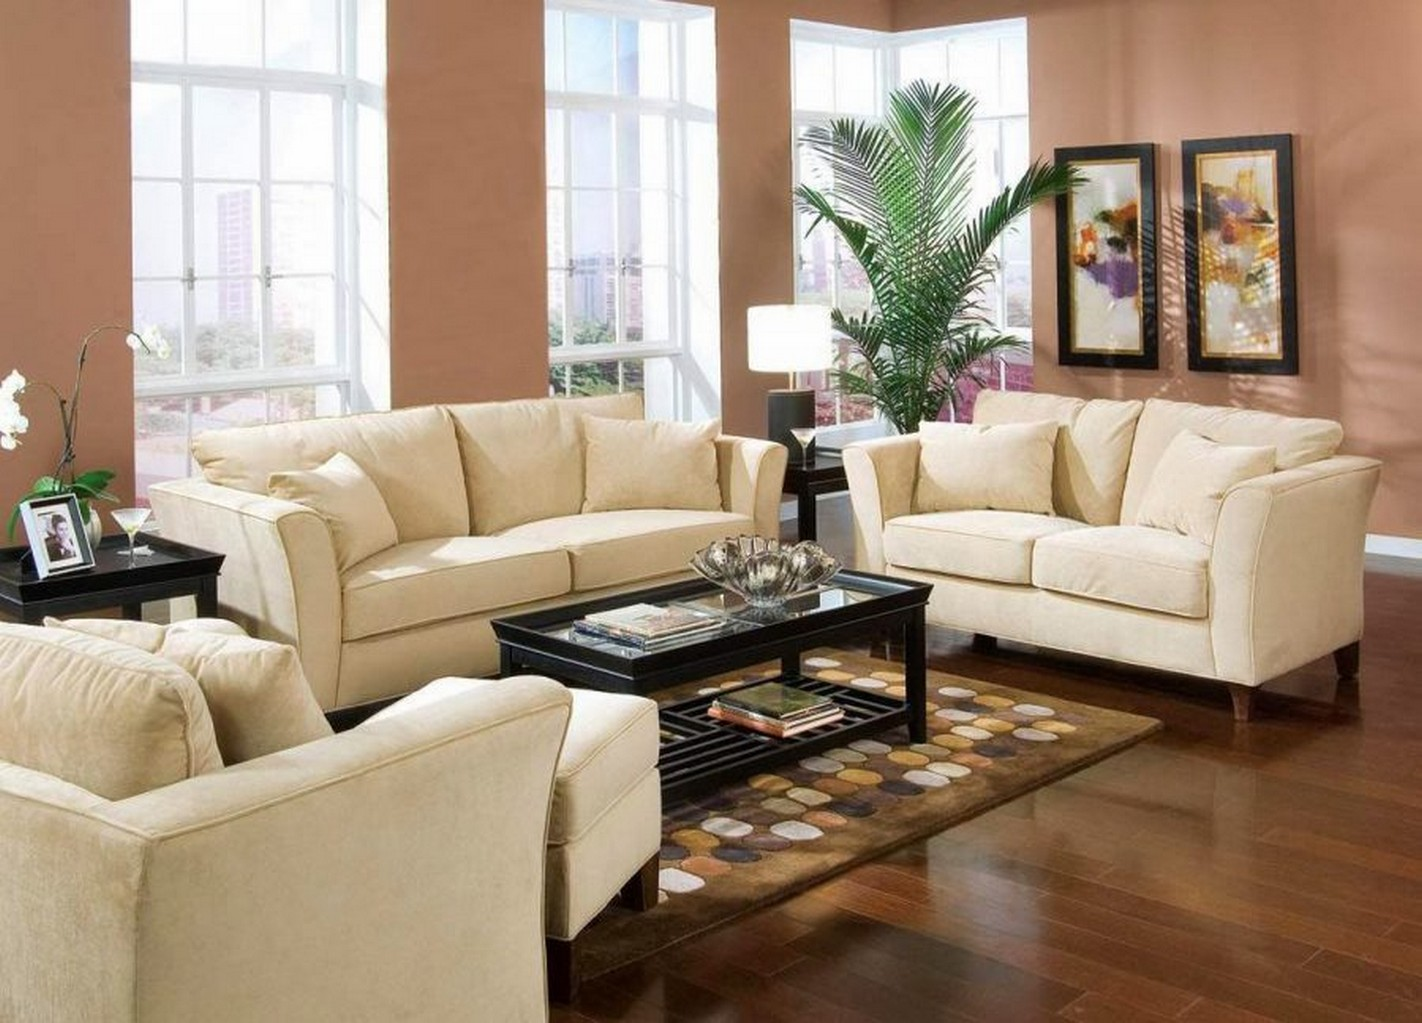 Seating Ideas For A Small Living Room: Small Living Room Furniture Ideas